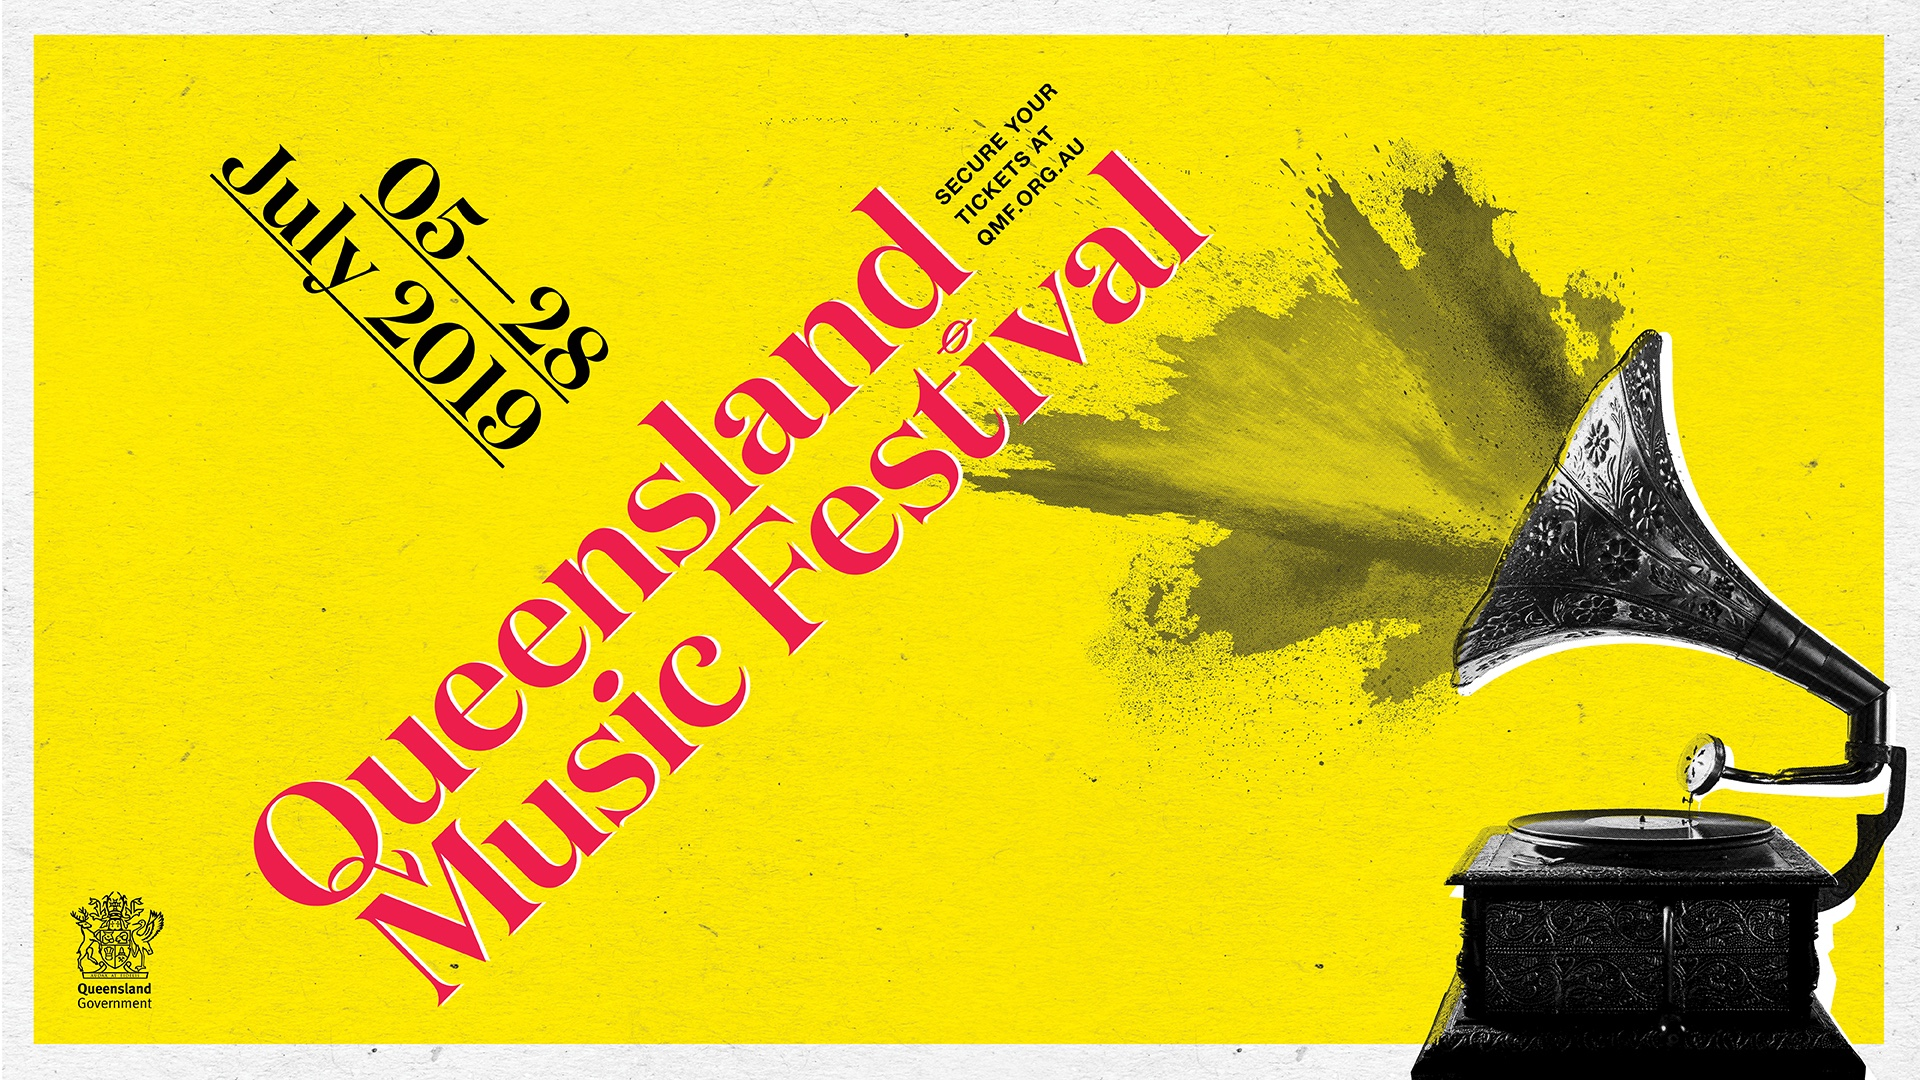 Queensland Music Festival appoints The M Agency; launches new campaign for the 2019 Festival